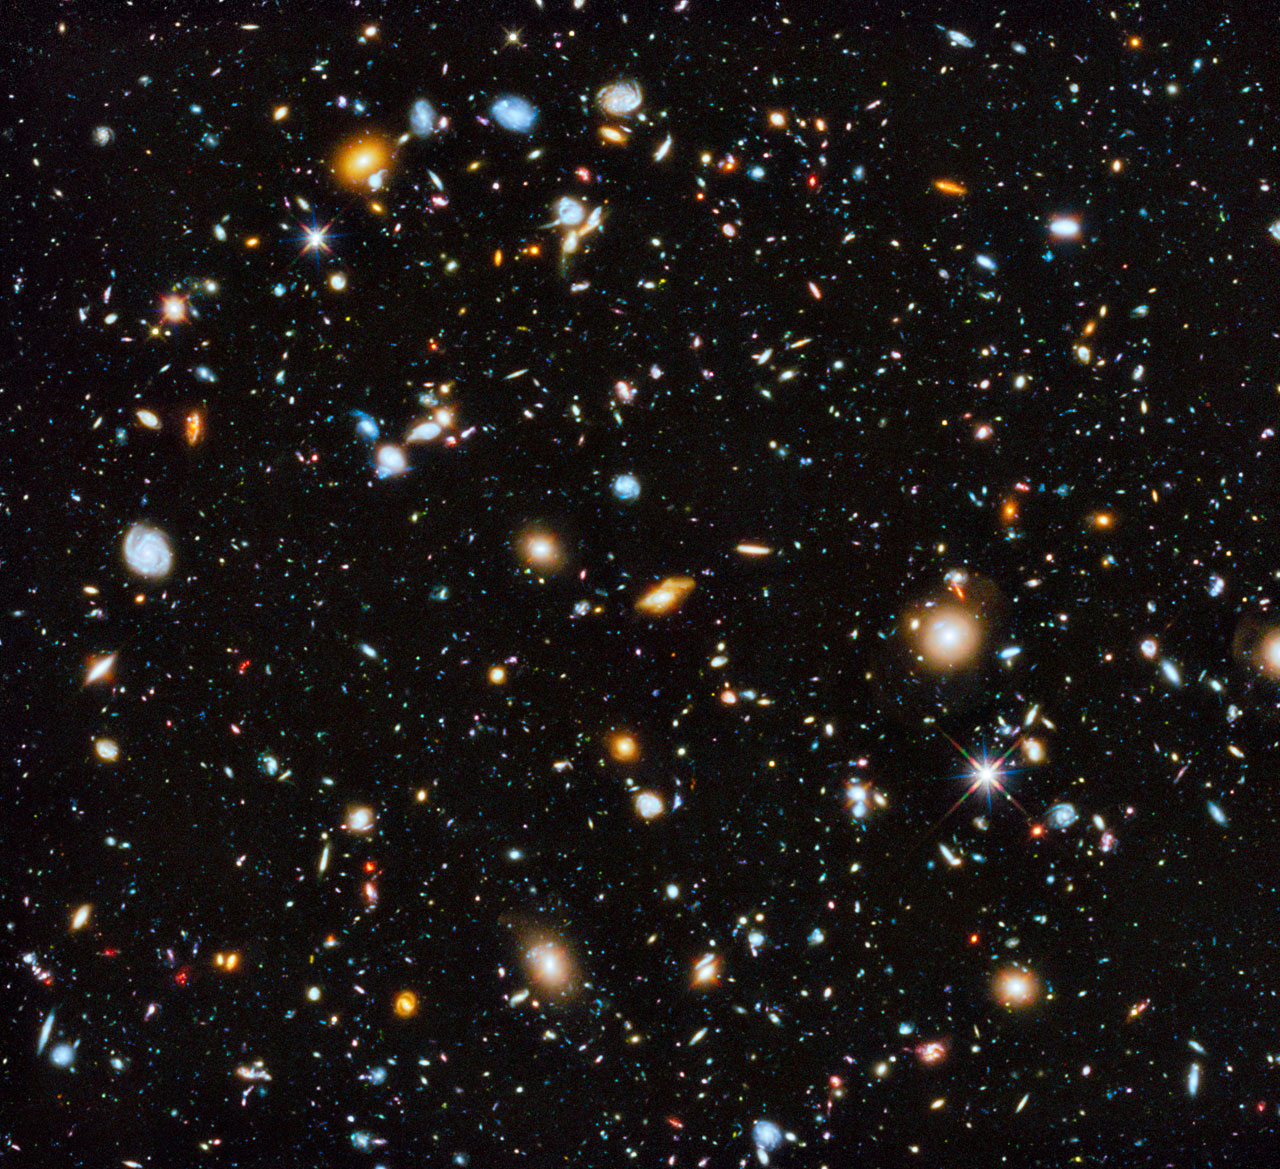 The hubble ultra deep field as seen in ultraviolet visible and infrared light image credit nasa esa h teplitz and m rafelski ipac caltech